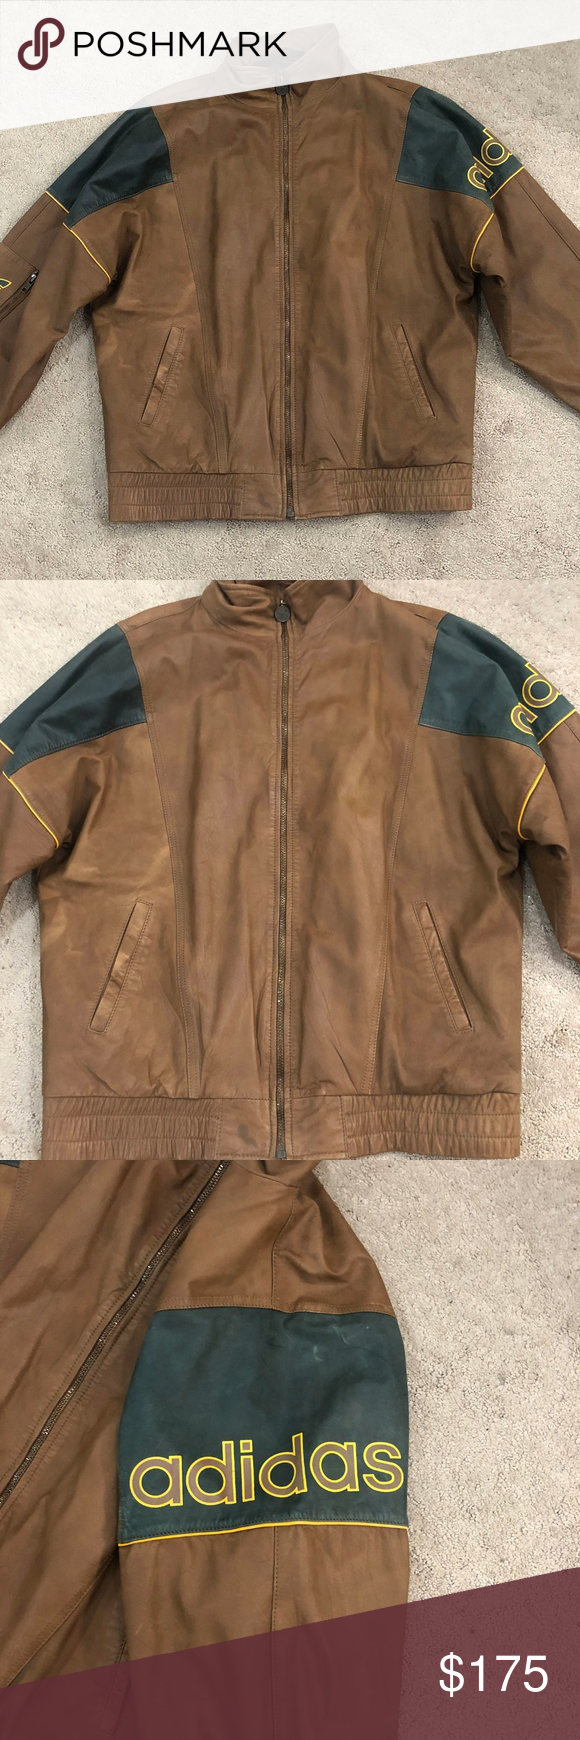 Mens Adidas Vintage Brown Leather Bomber Size M USED MEN'S